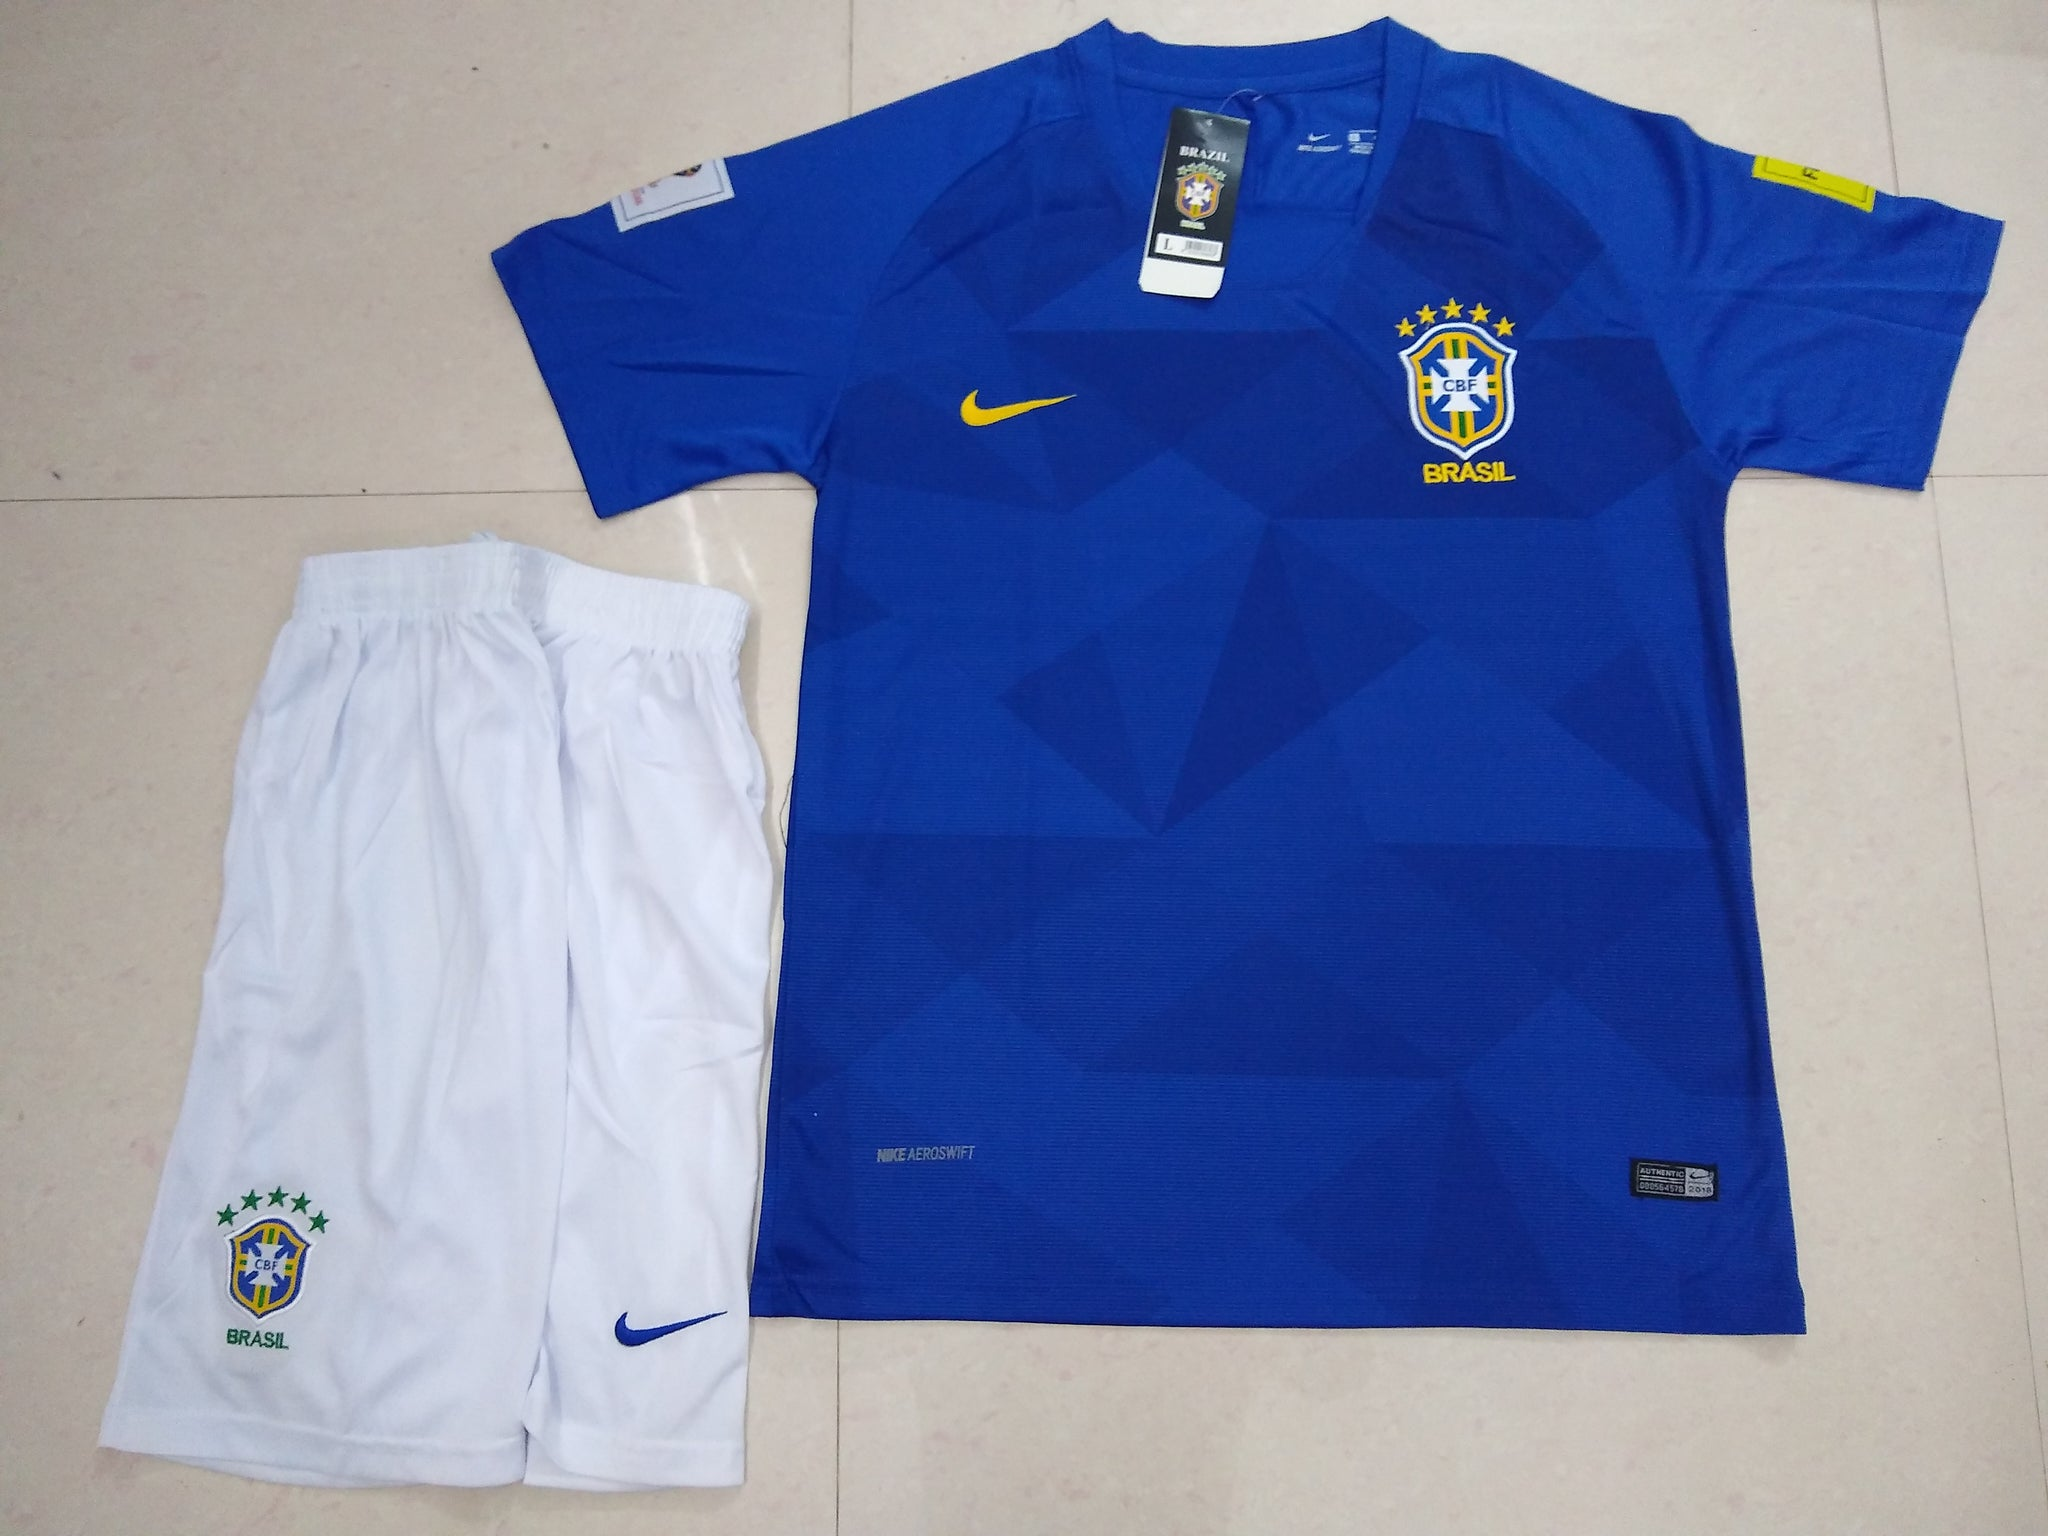 35f7dac0730 Brazil Football Jersey FIFA World Cup 2018 replica kit online India ...